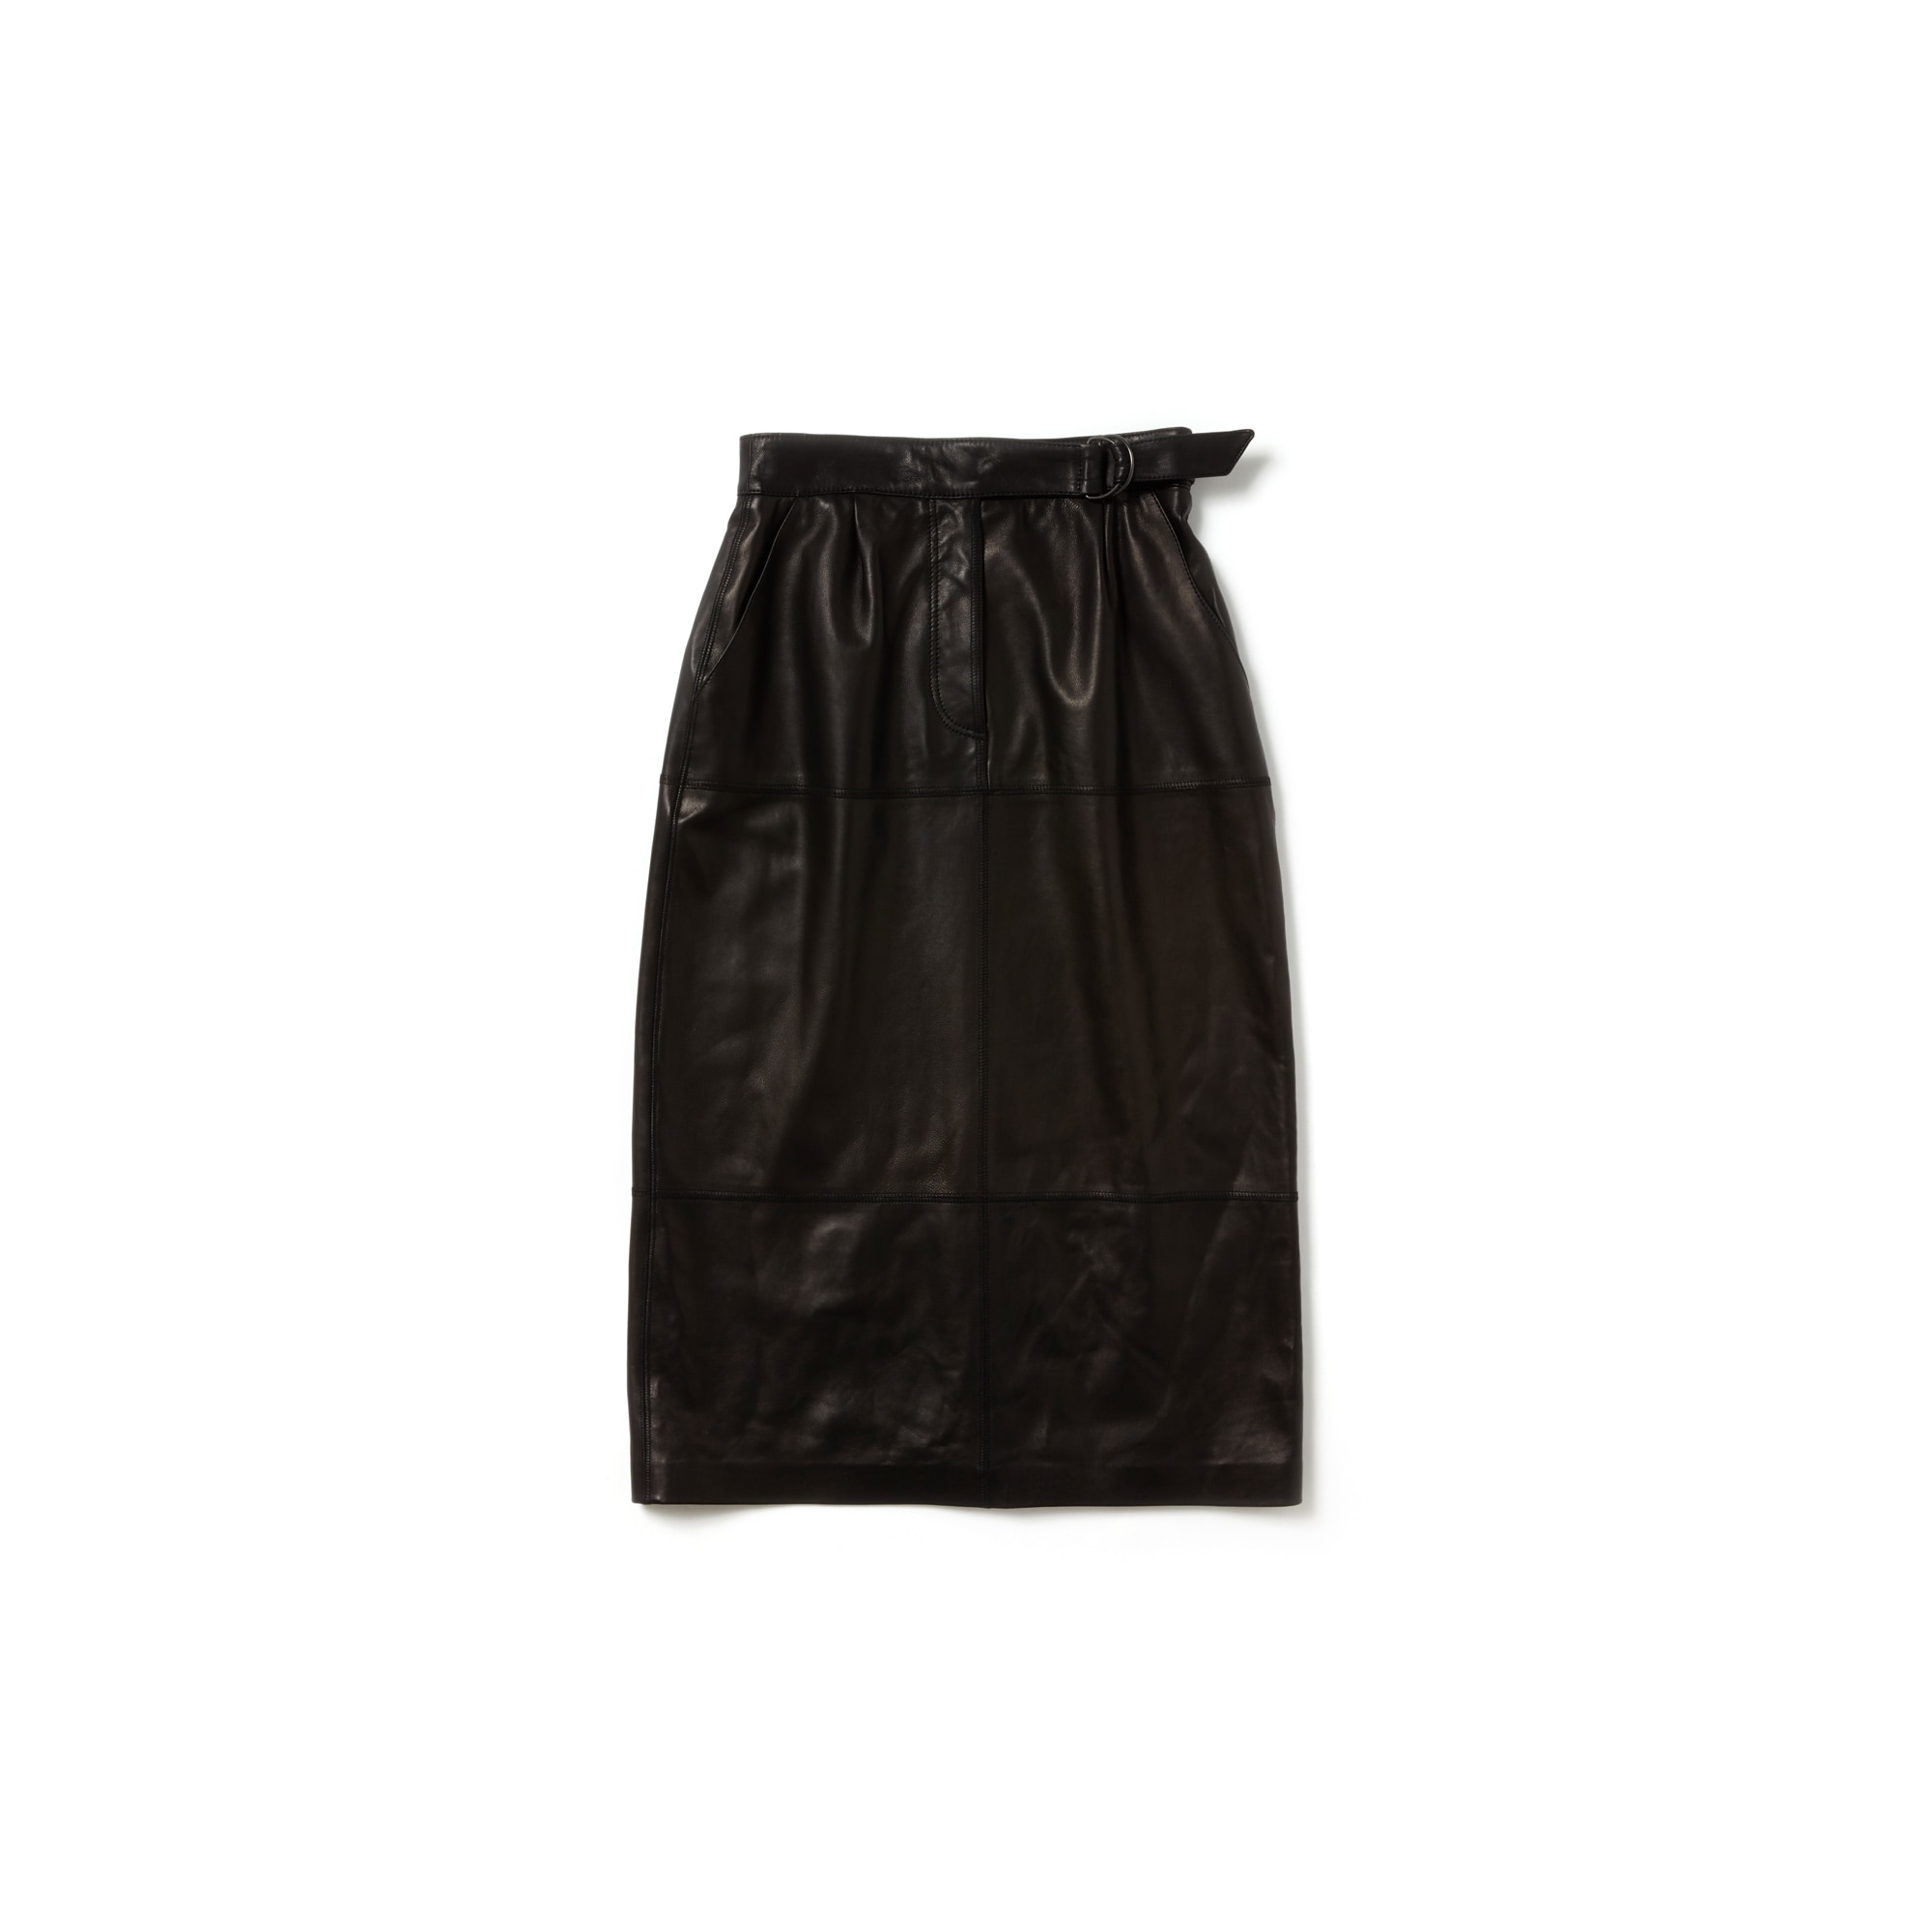 Women's Fashion Show High Waisted Soft Leather Skirt